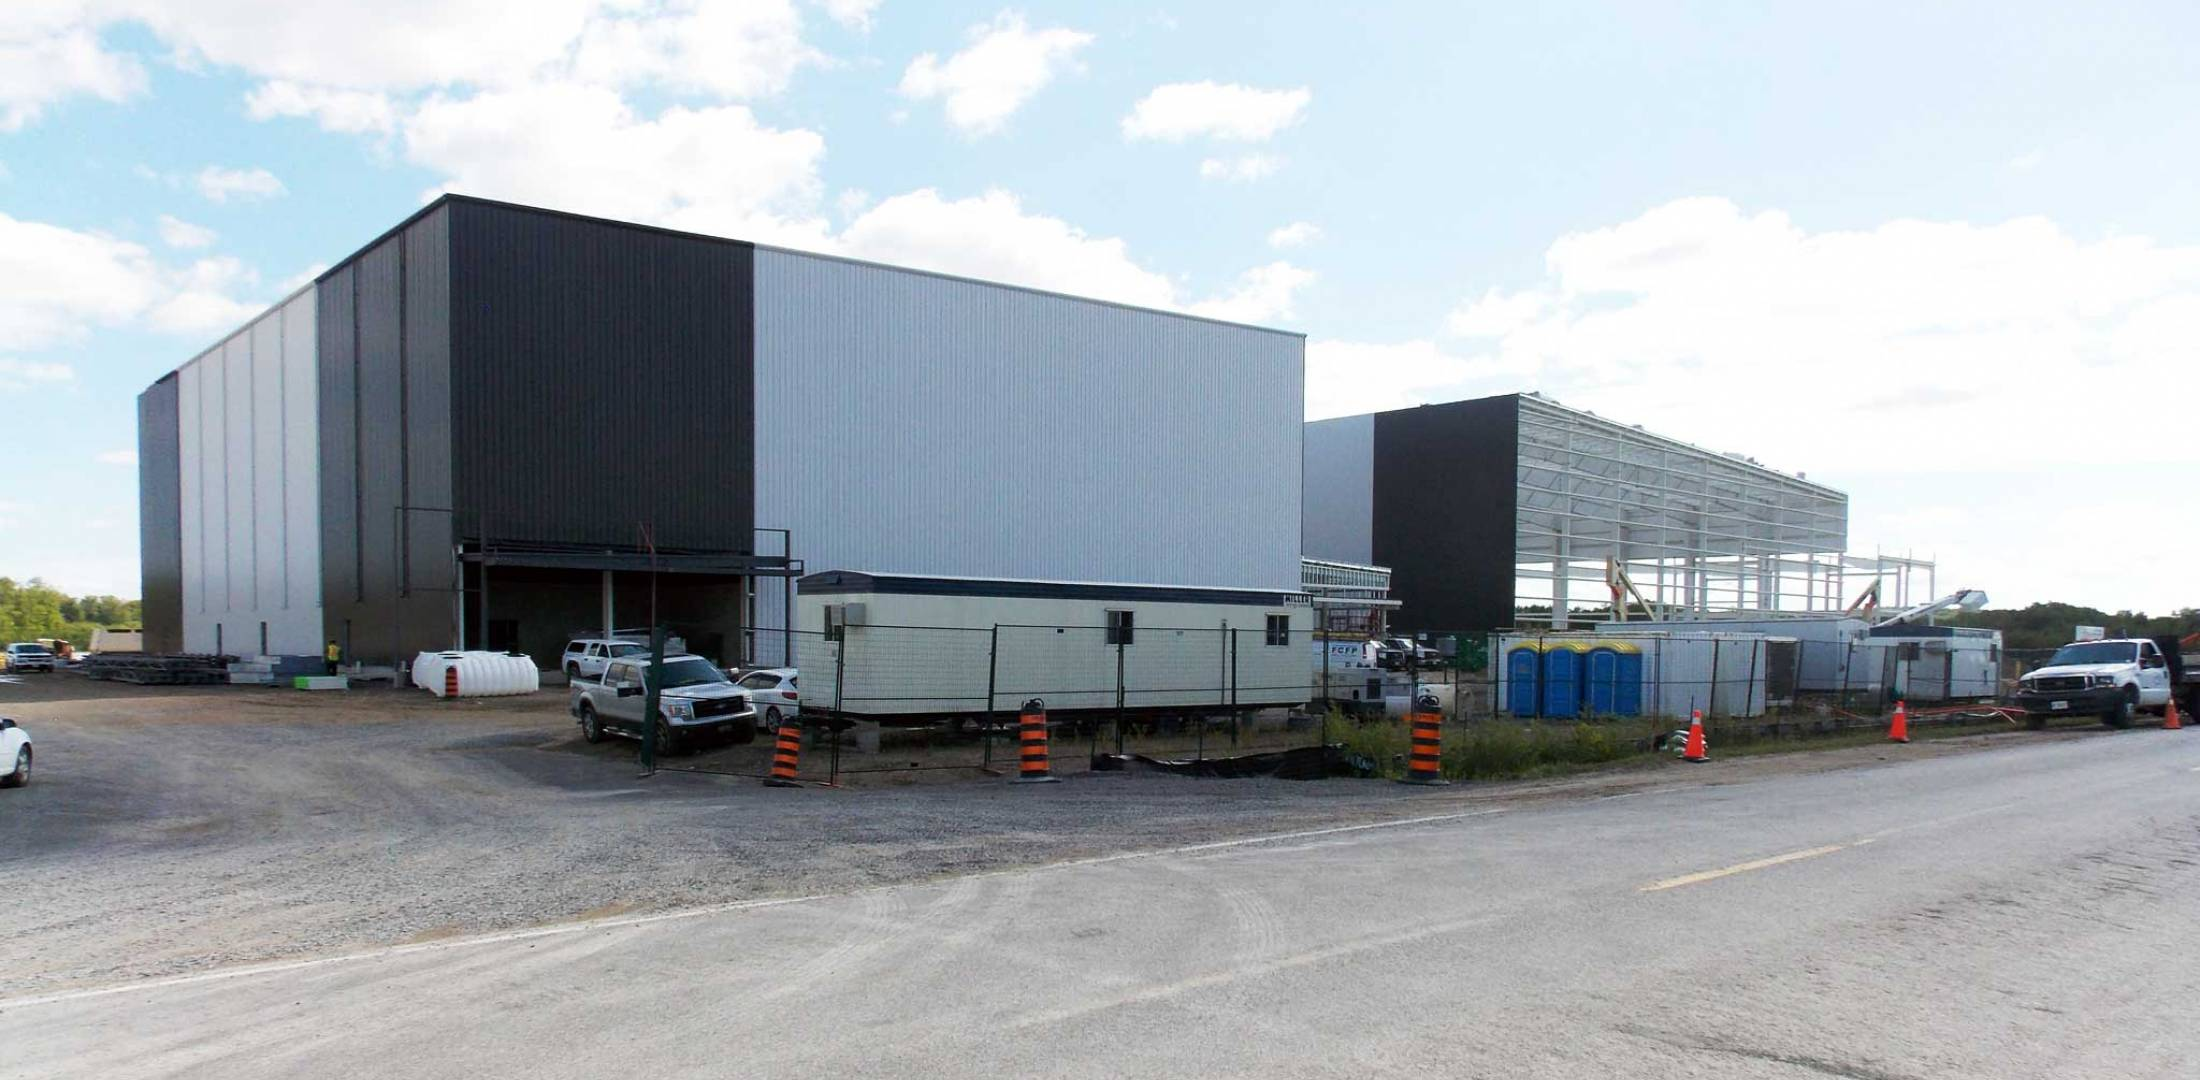 Flying Colours 100,000 sq ft hangar expansion